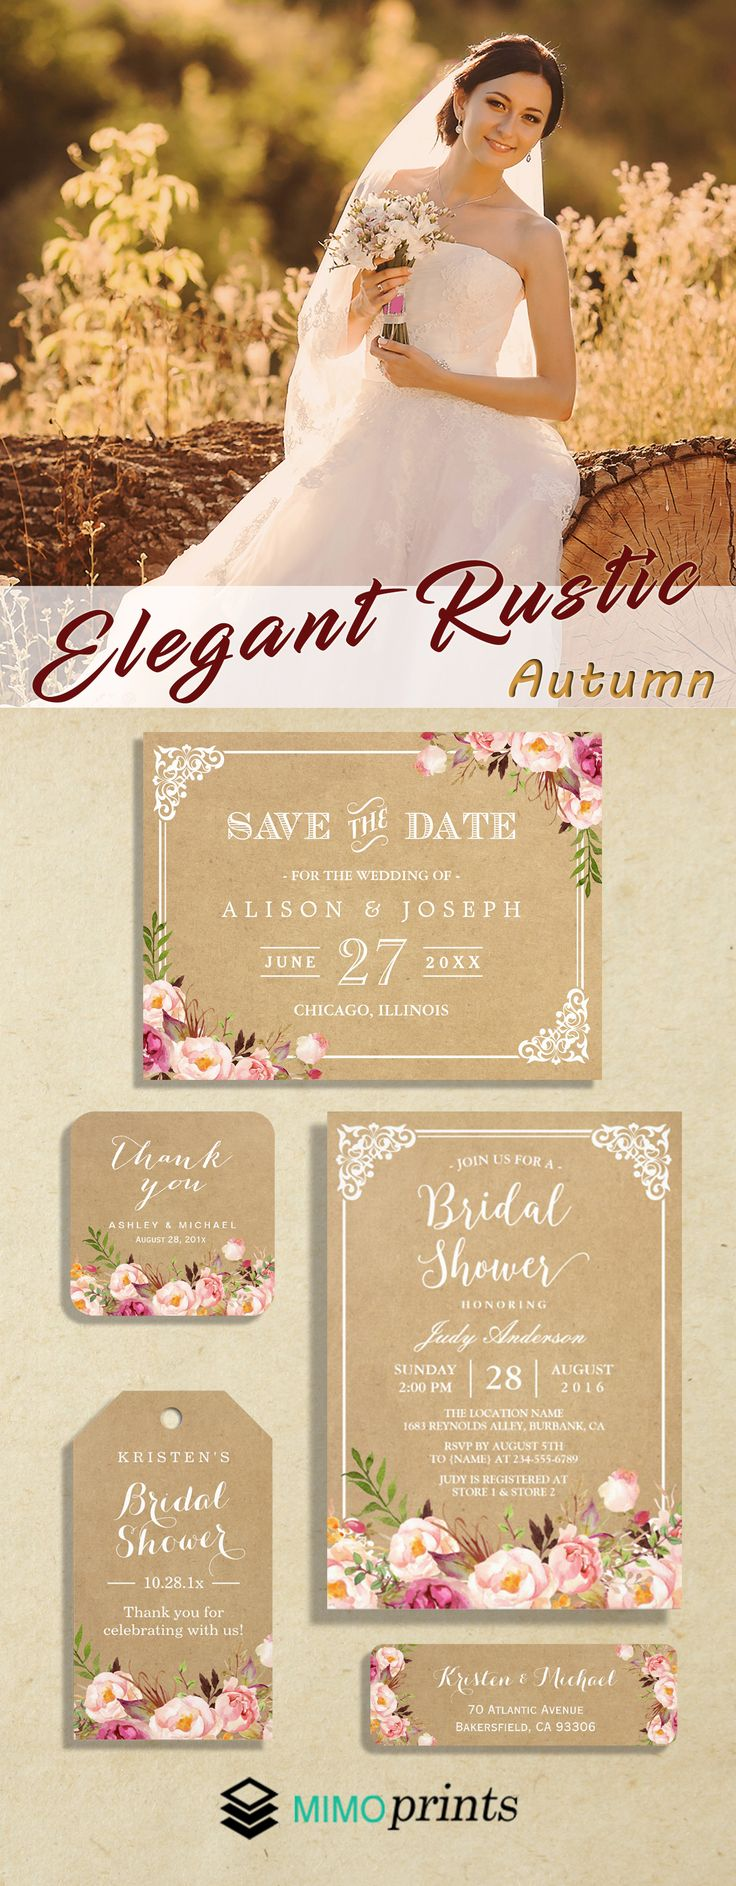 An Autumn Elegant Rustic Floral Kraft Invitation